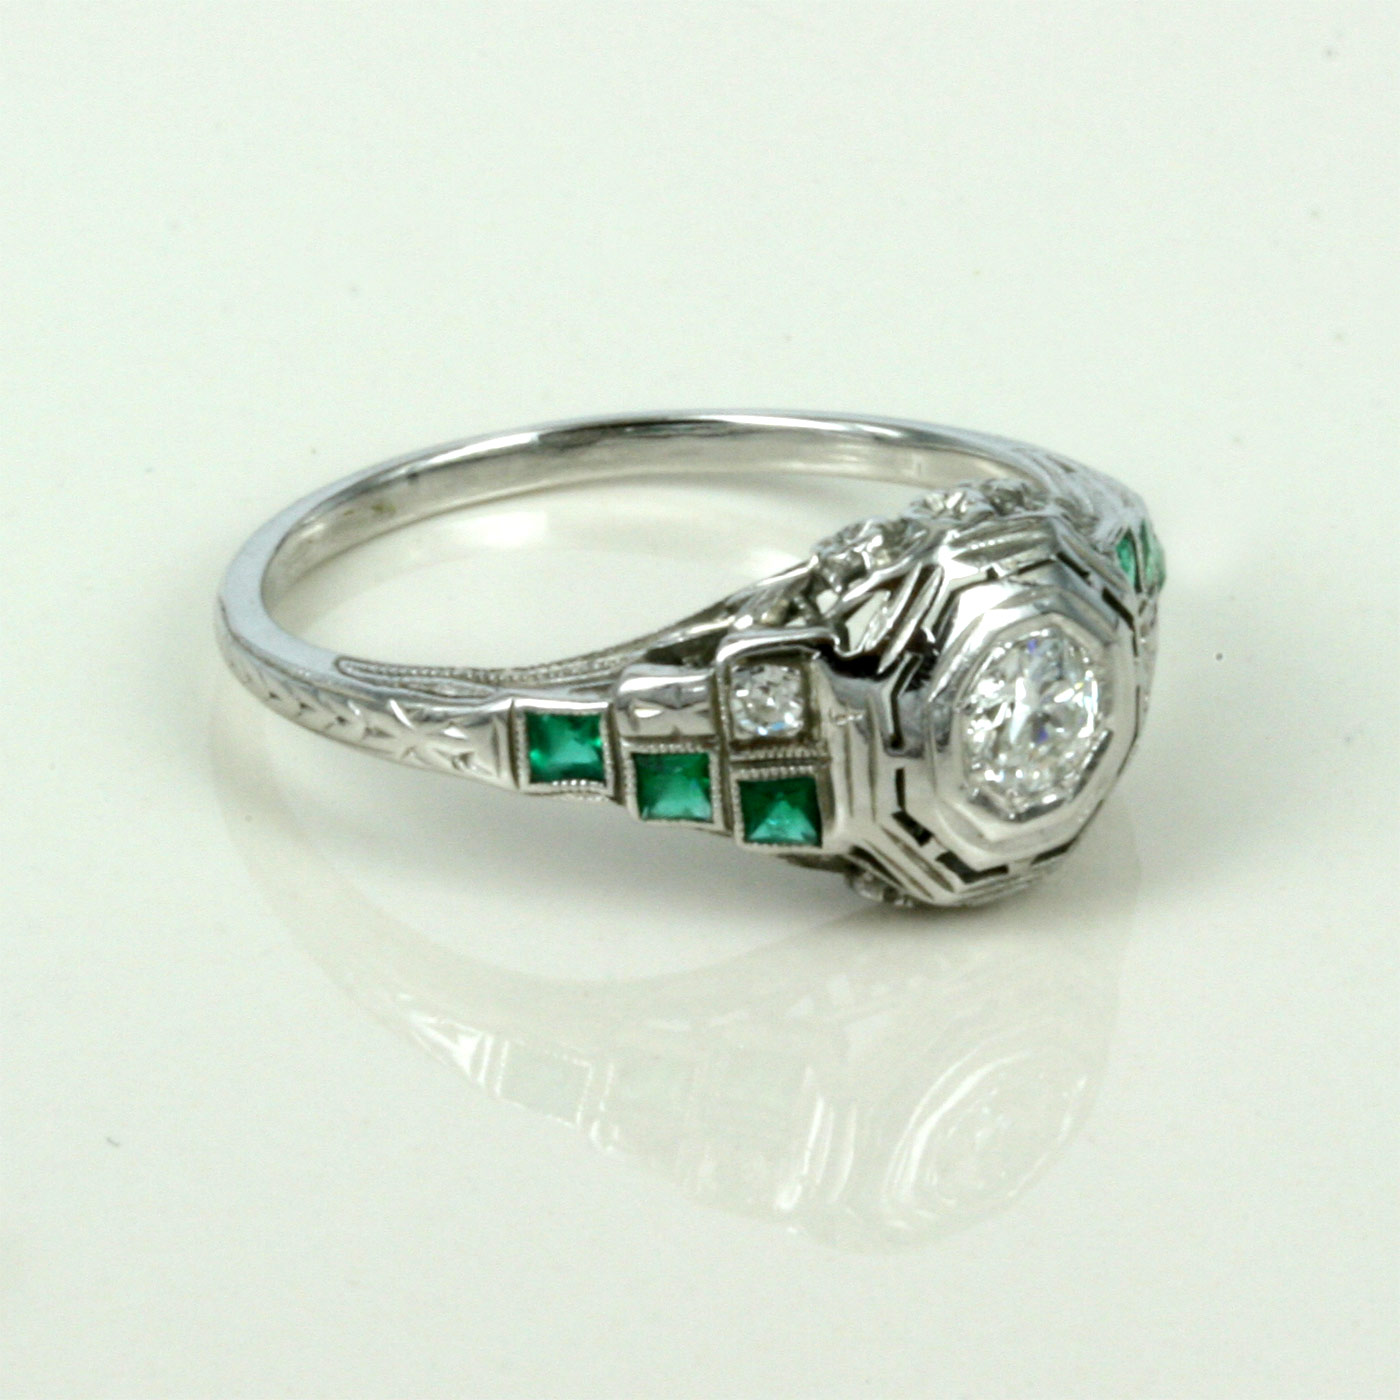 art deco emerald and diamond engagement ring art deco wedding ring Art Deco emerald and diamond engagement ring